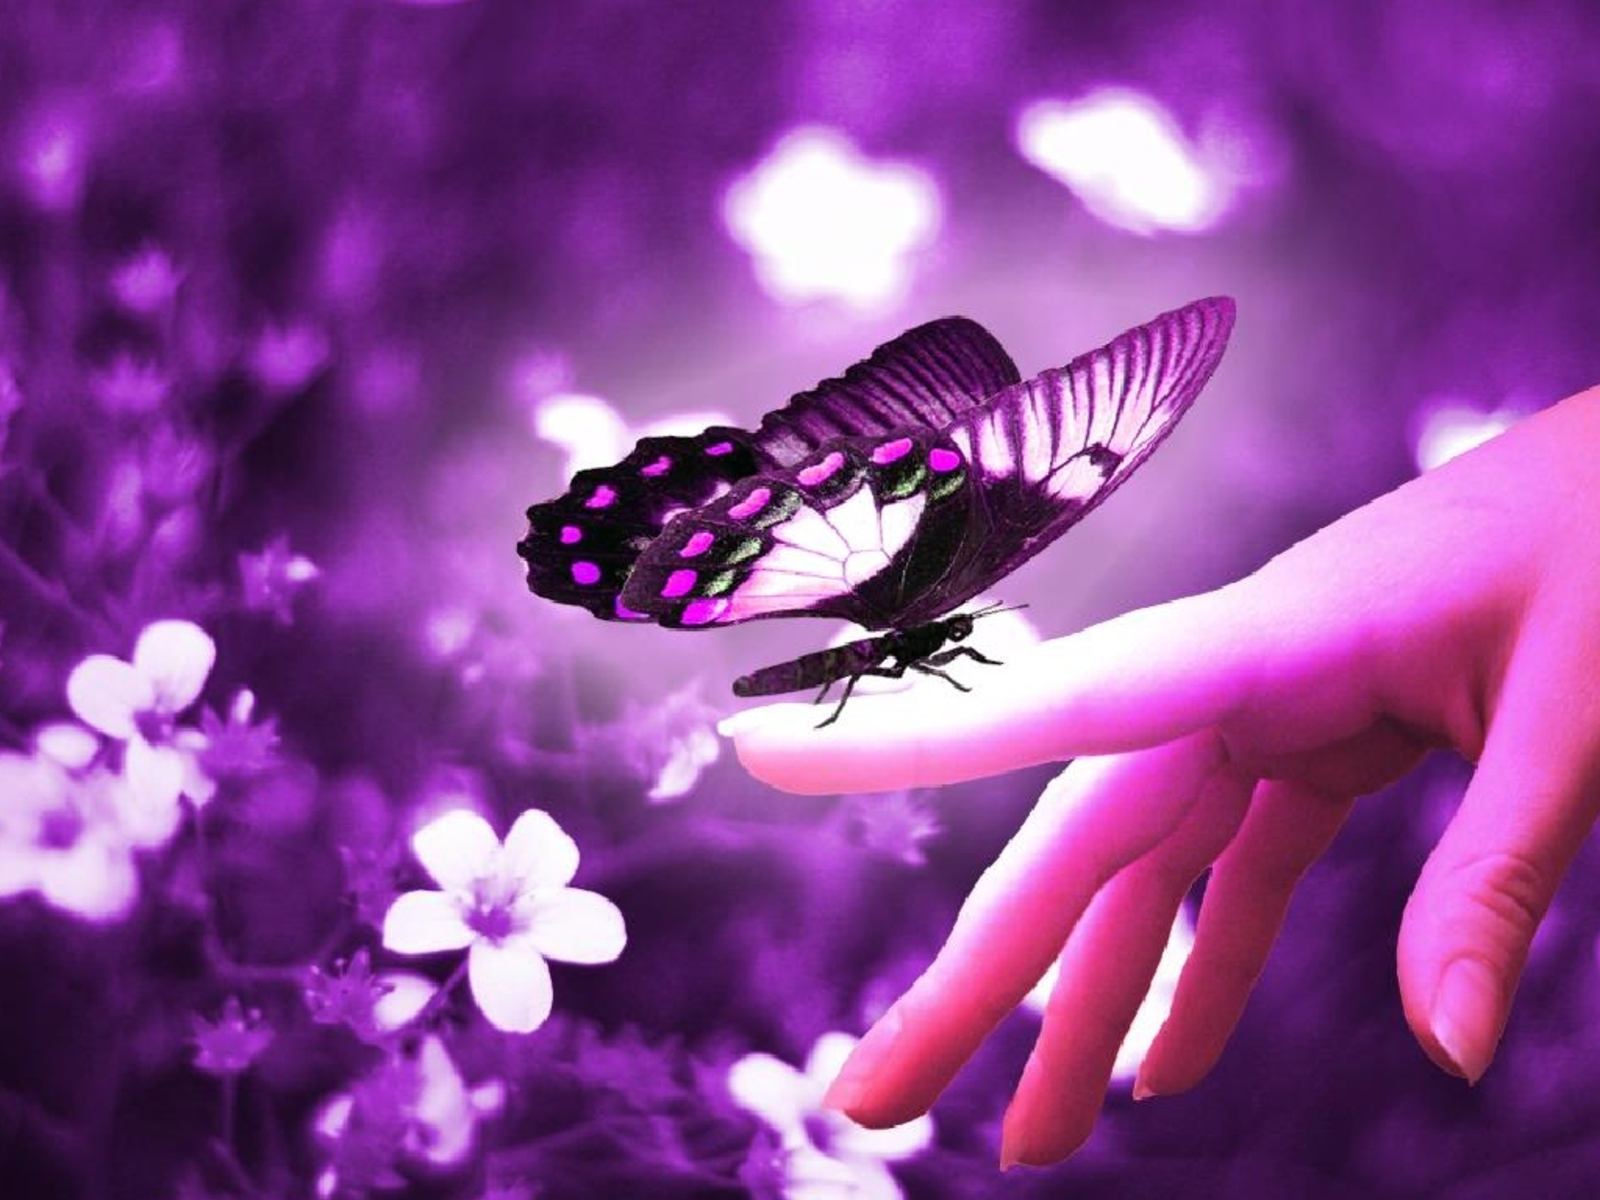 Beautiful Butterflies   Butterflies Wallpaper 9481170 1600x1200